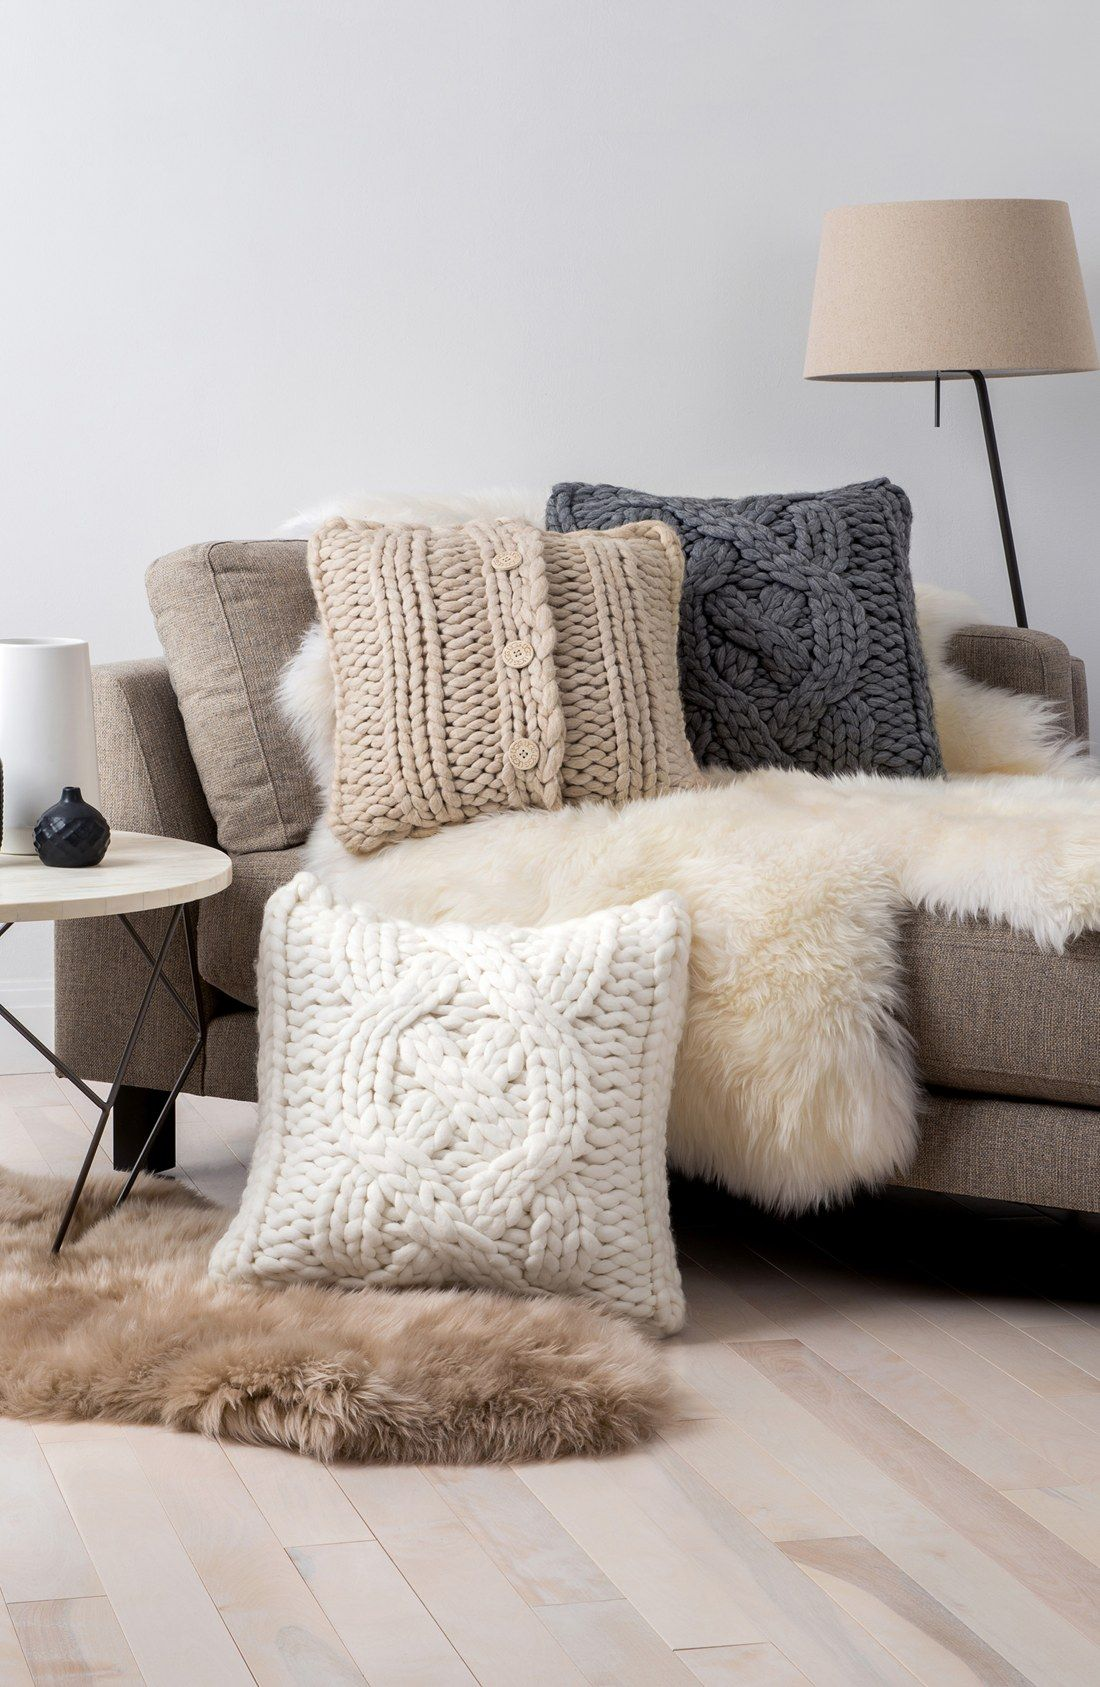 ugg Australia Oversize Cable Knit Pillow nordstrom | Houses ...